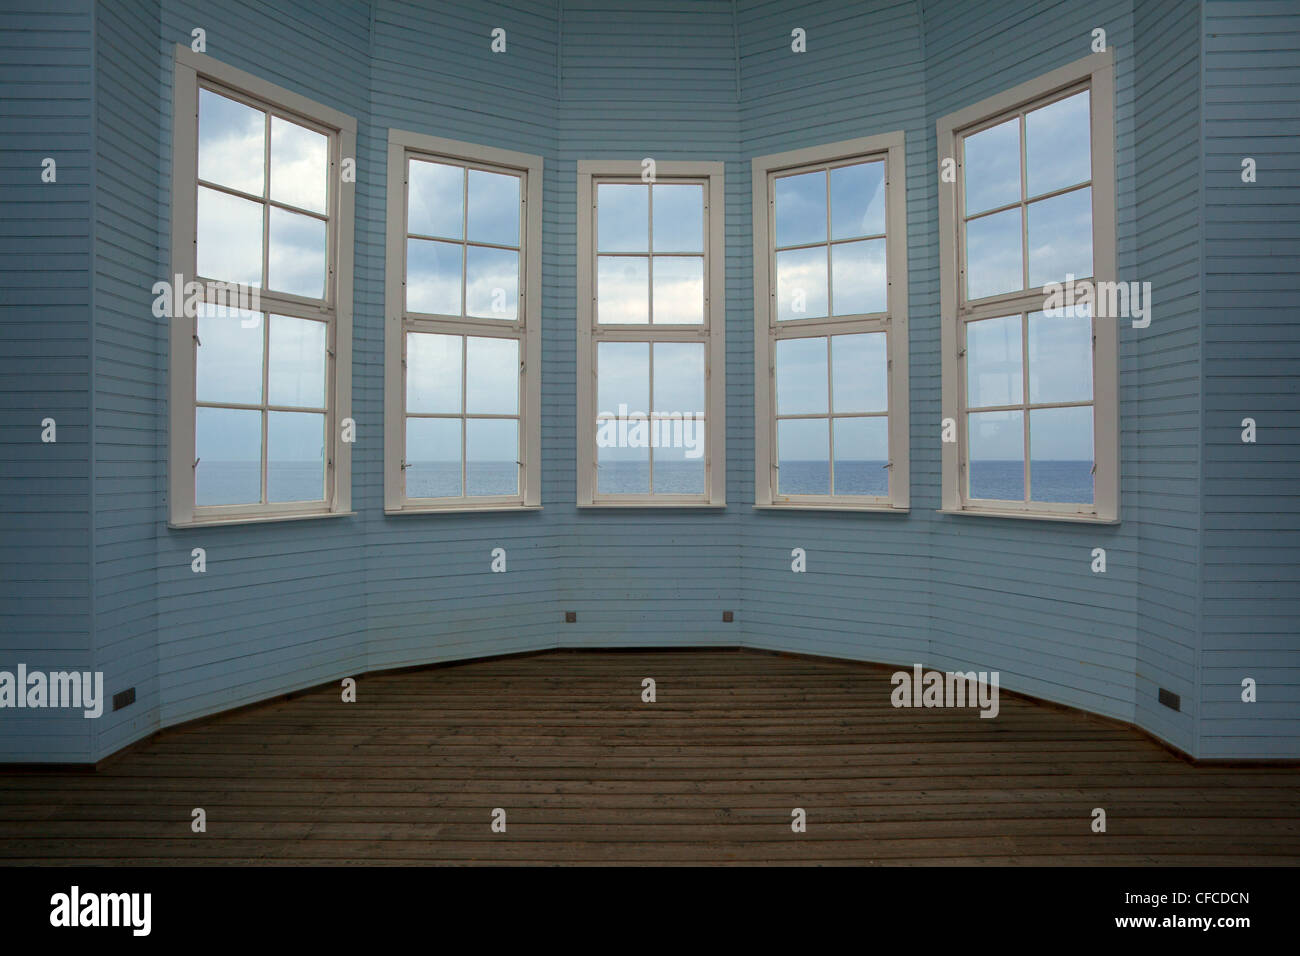 """Window to the sea"", Bansin seaside resort, Usedom island, Baltic Sea, Mecklenburg-West Pomerania, Germany - Stock Image"